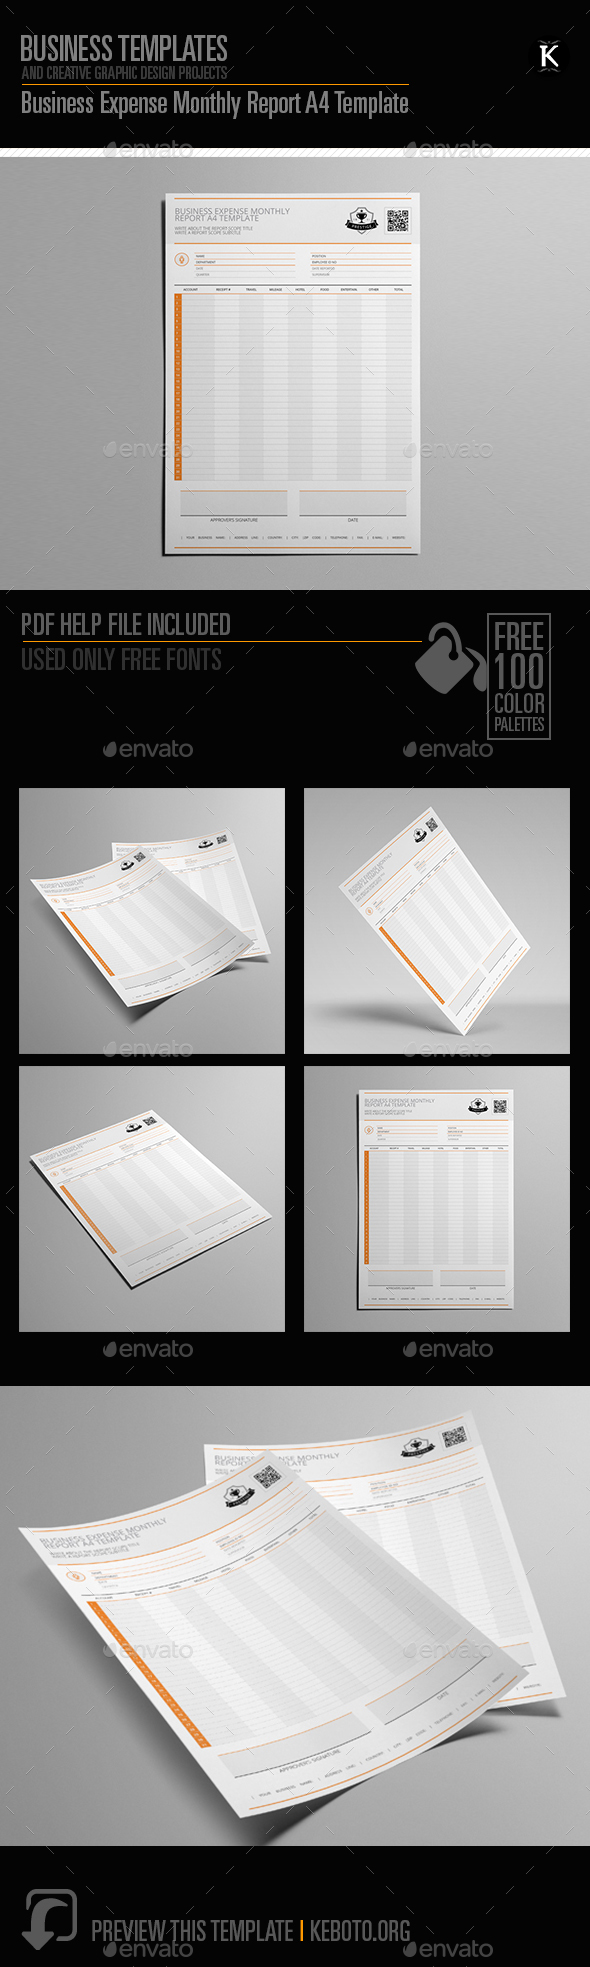 Business Expense Monthly Report A4 Template - Miscellaneous Print Templates